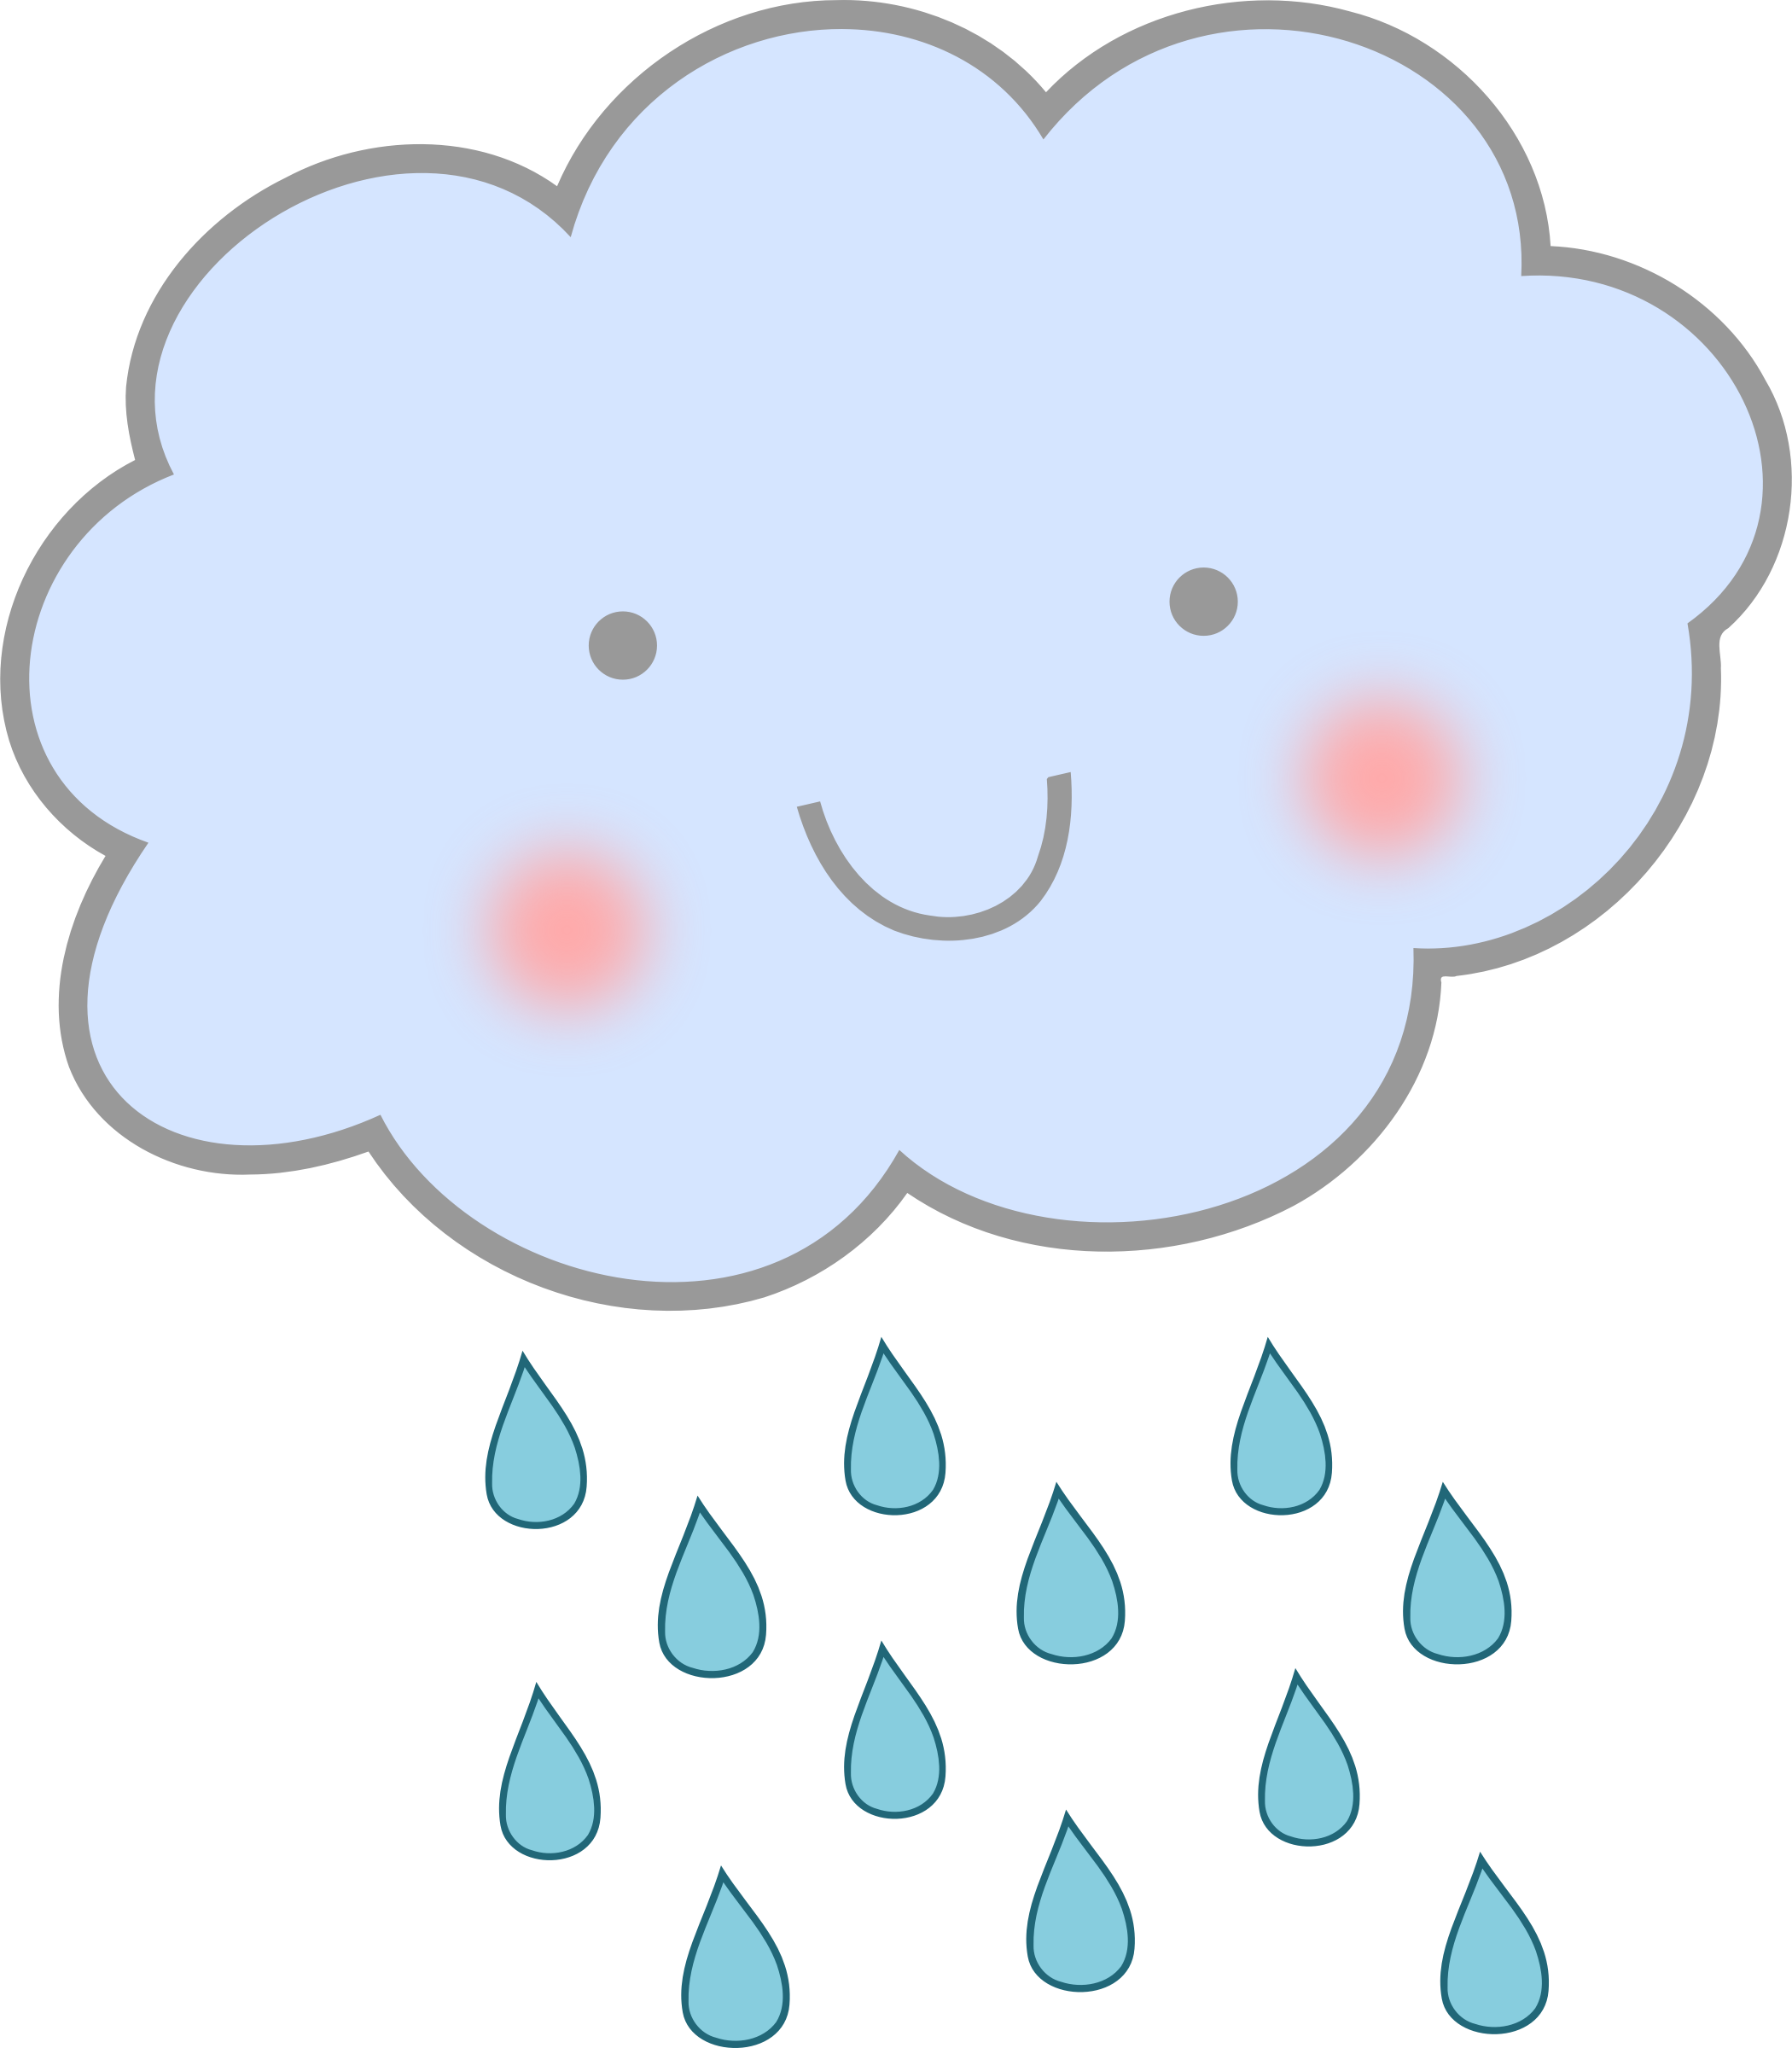 Planet clipart cute. Rain cloud big image